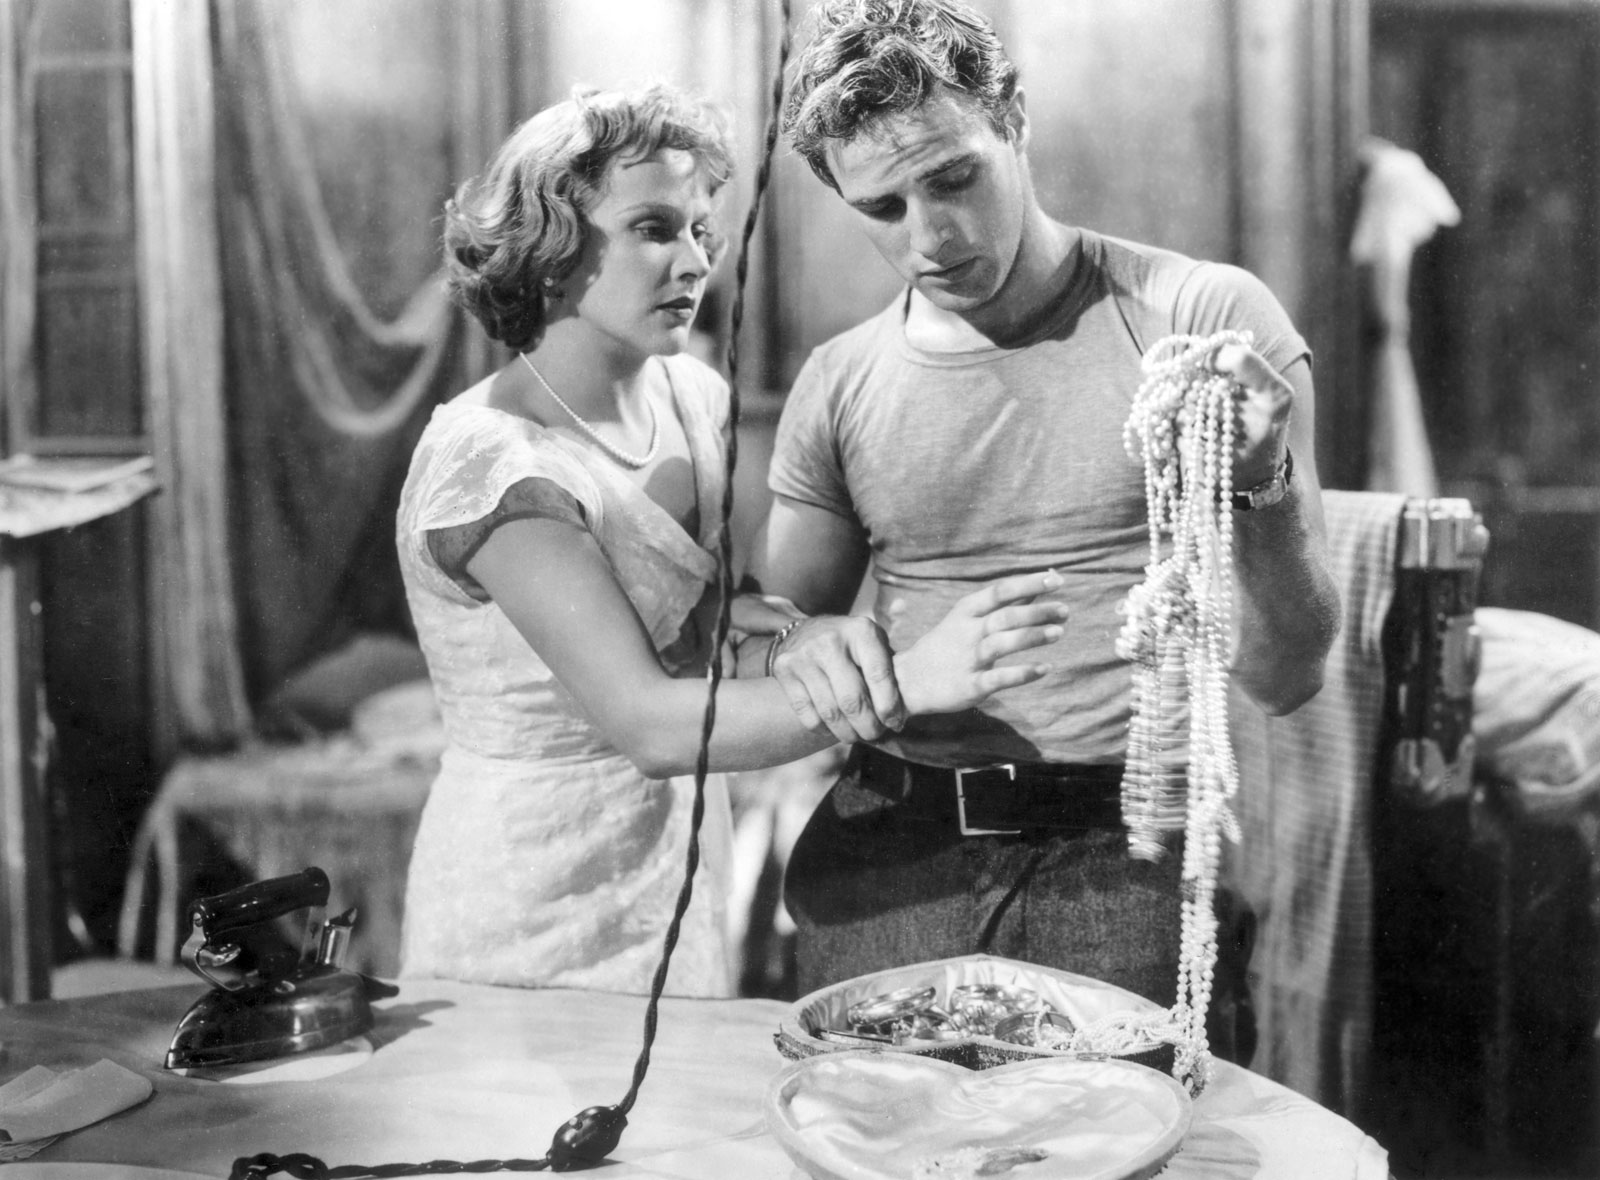 going through blanche dubois s luggage arts culture still from a streetcar d desire